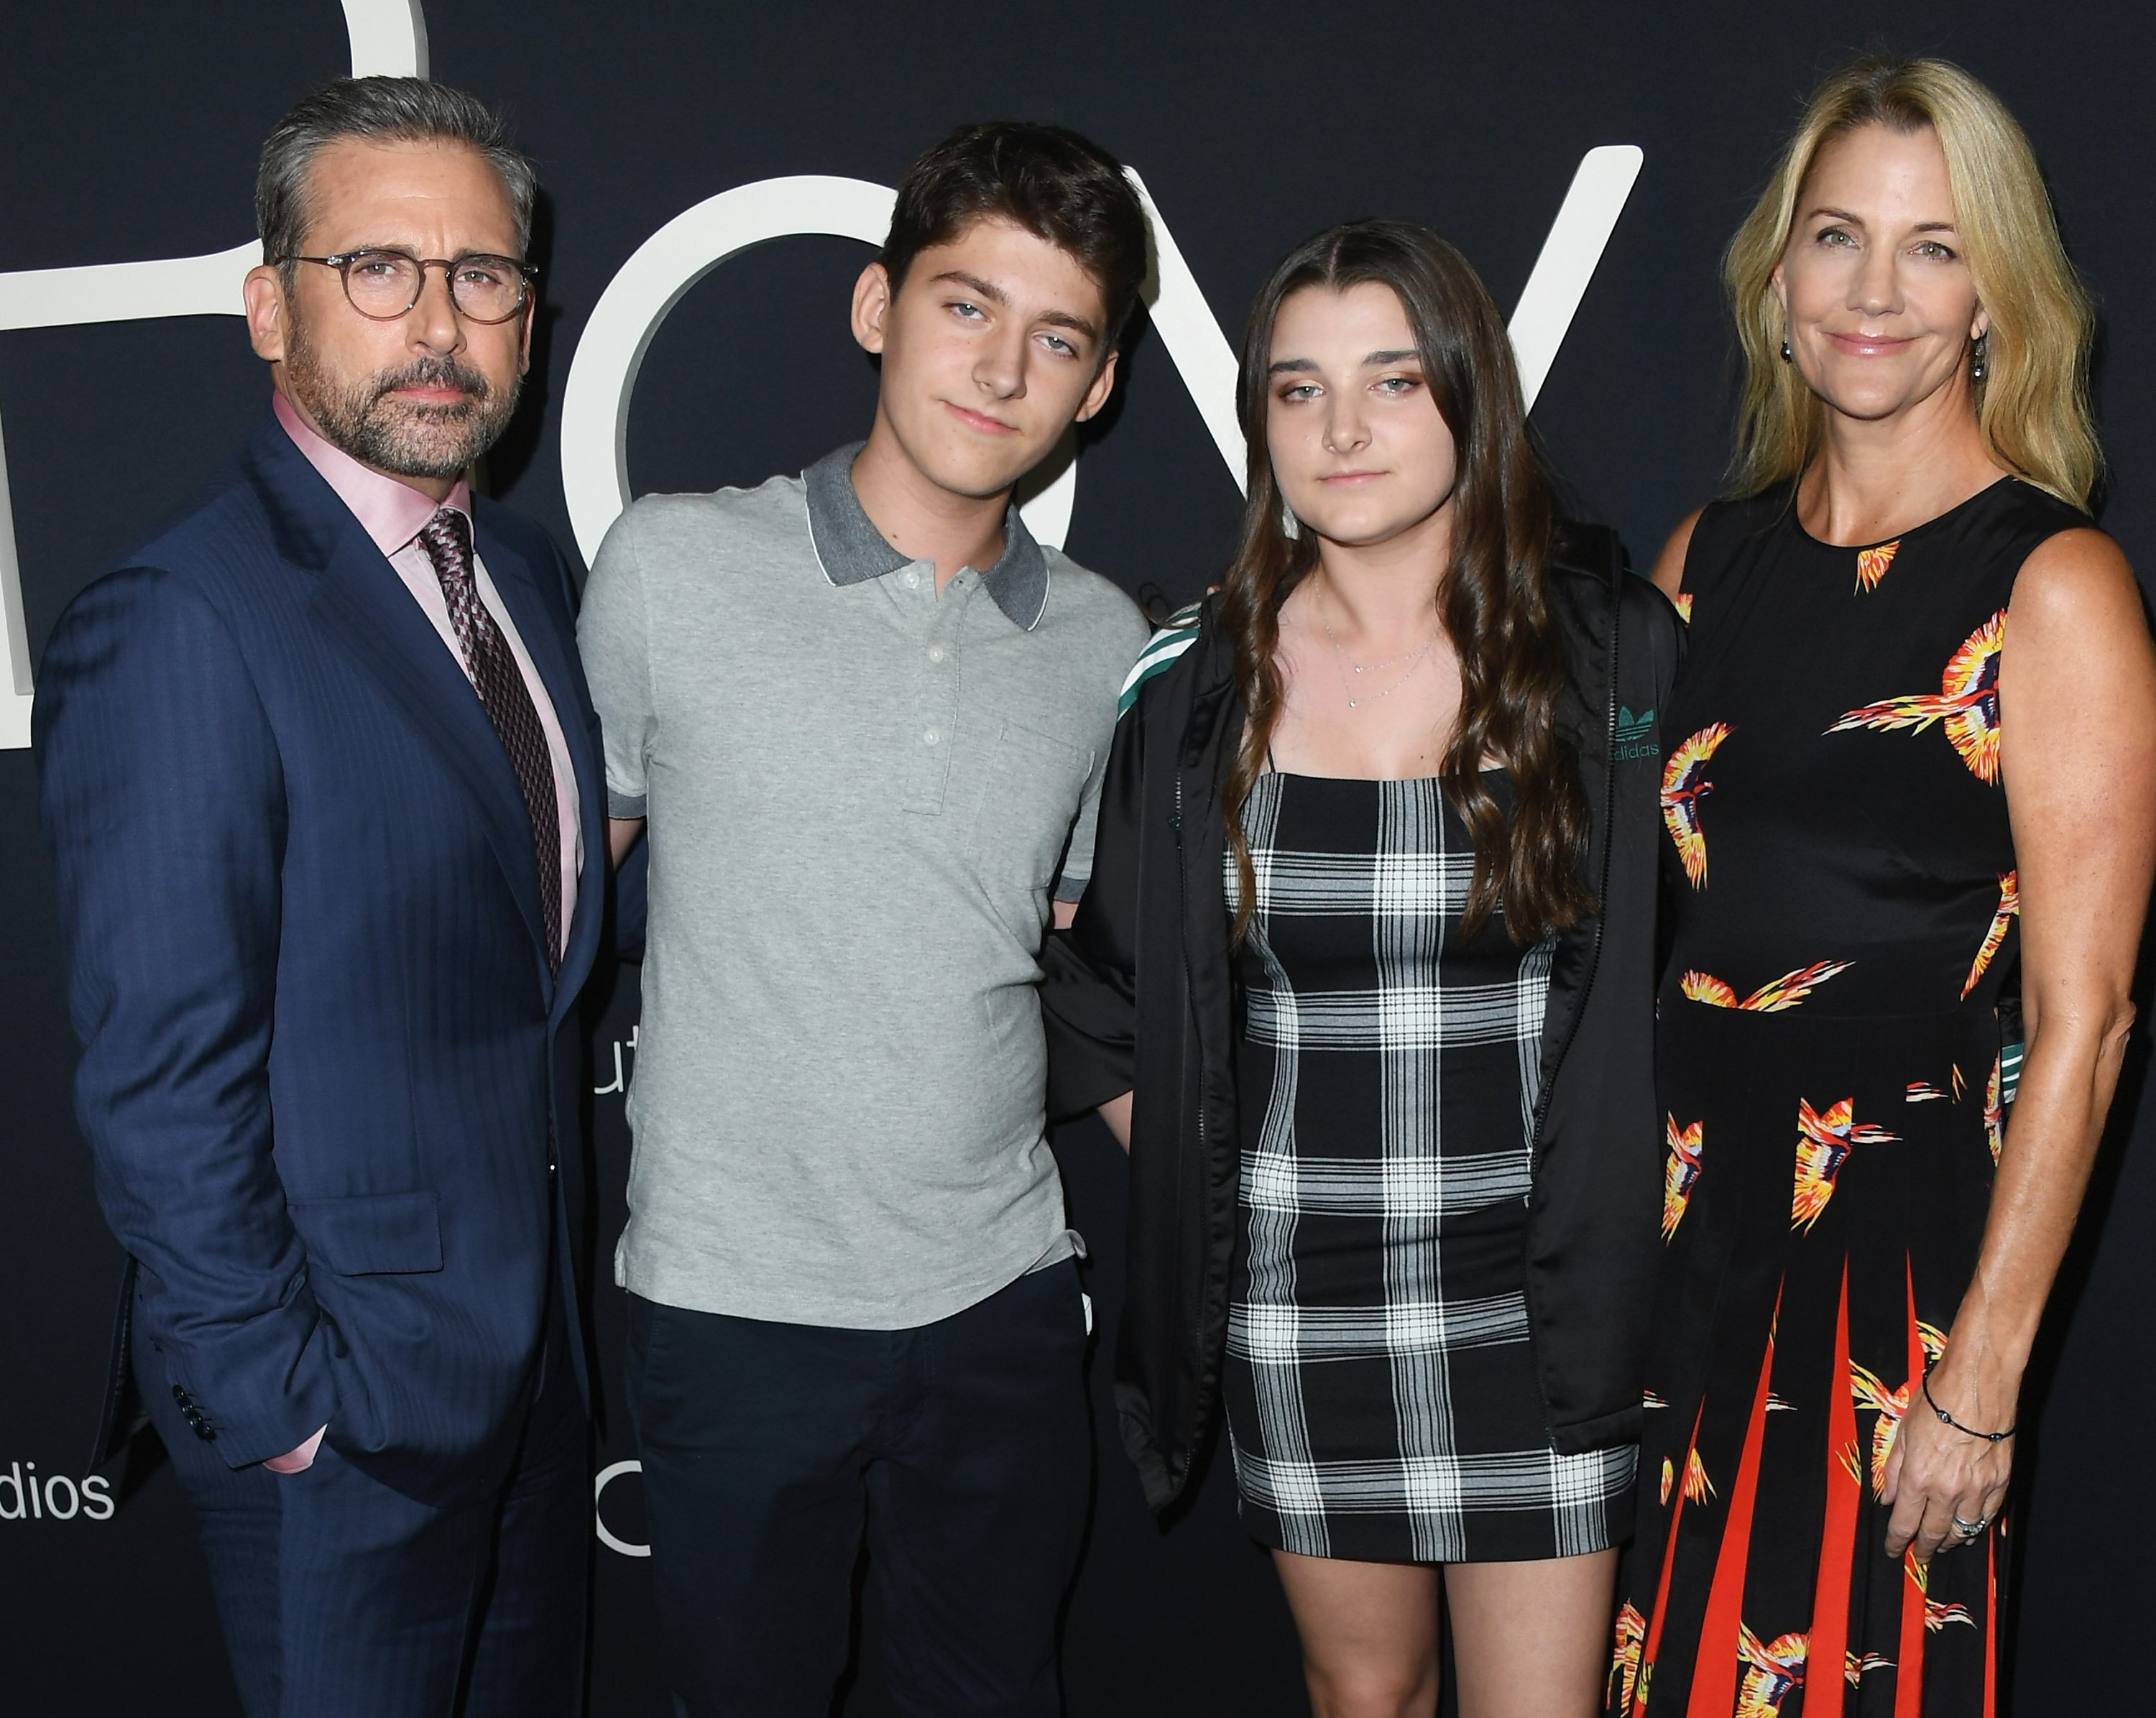 """Steve Carell, John Carell, Elisabeth Anne Carell and Nancy Carell at the premiere of """"Beautiful Boy"""" on October 8, 2018 in Beverly Hills, California. 